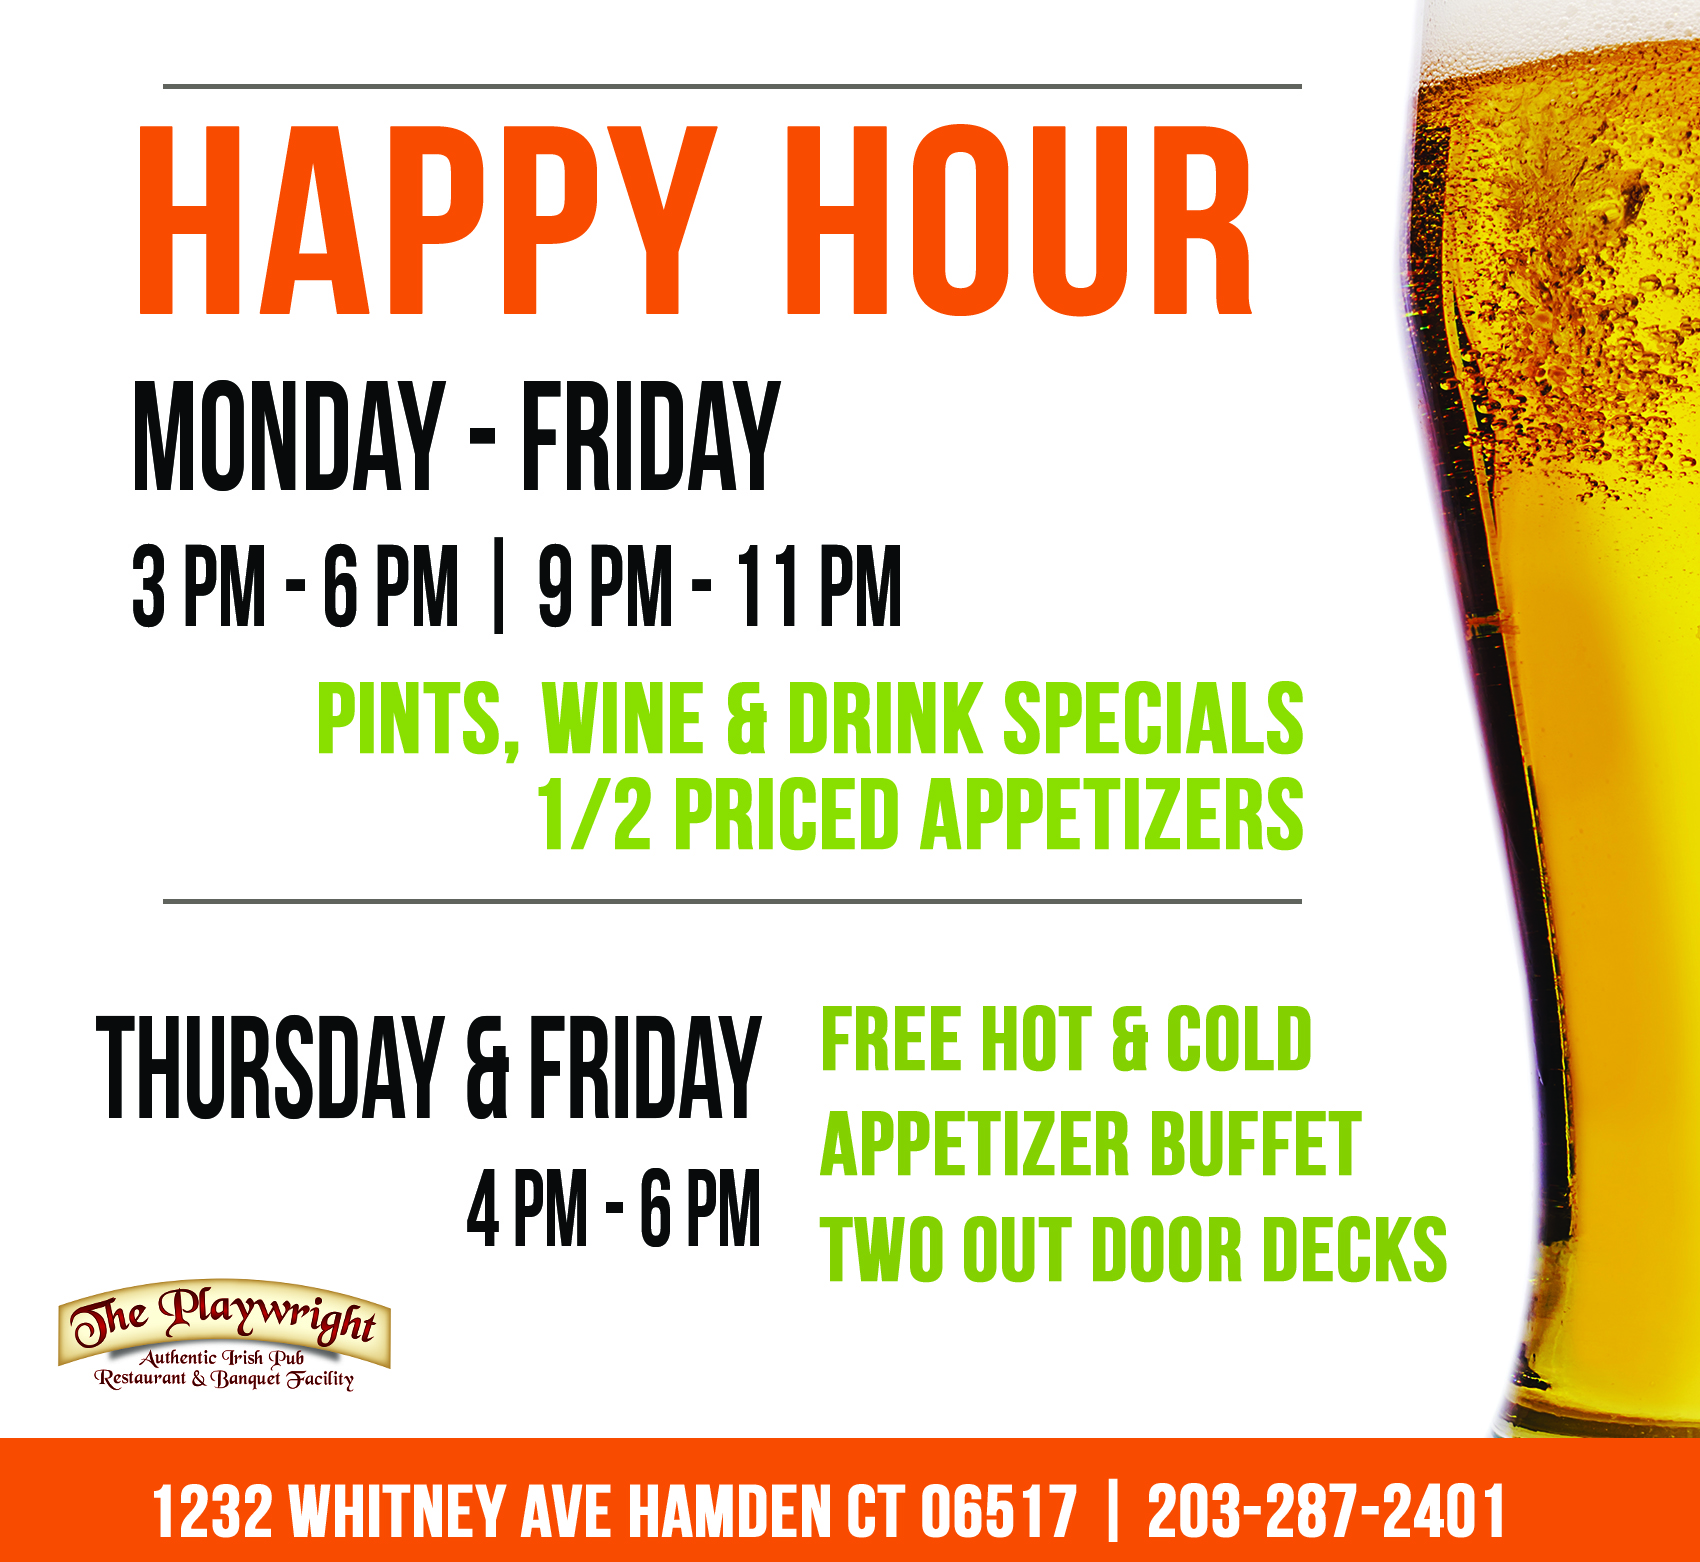 Happy Hour Monday through Friday, 3 pm to 6 pm and 9 pm to 11 pm. Featuring pints, wine, drink specials and half priced appetizers.  Thursday and Friday form 4 pm to 6 pm : Free hot and cold appetizer buffet and two outdoor decks.